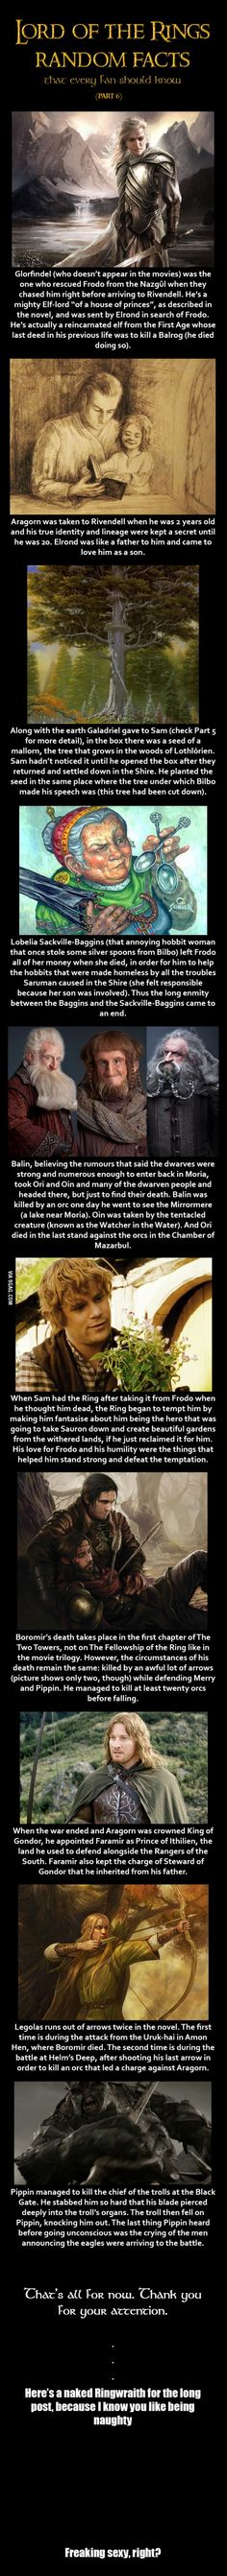 Here are some Lord of the Rings random facts (Part 6)